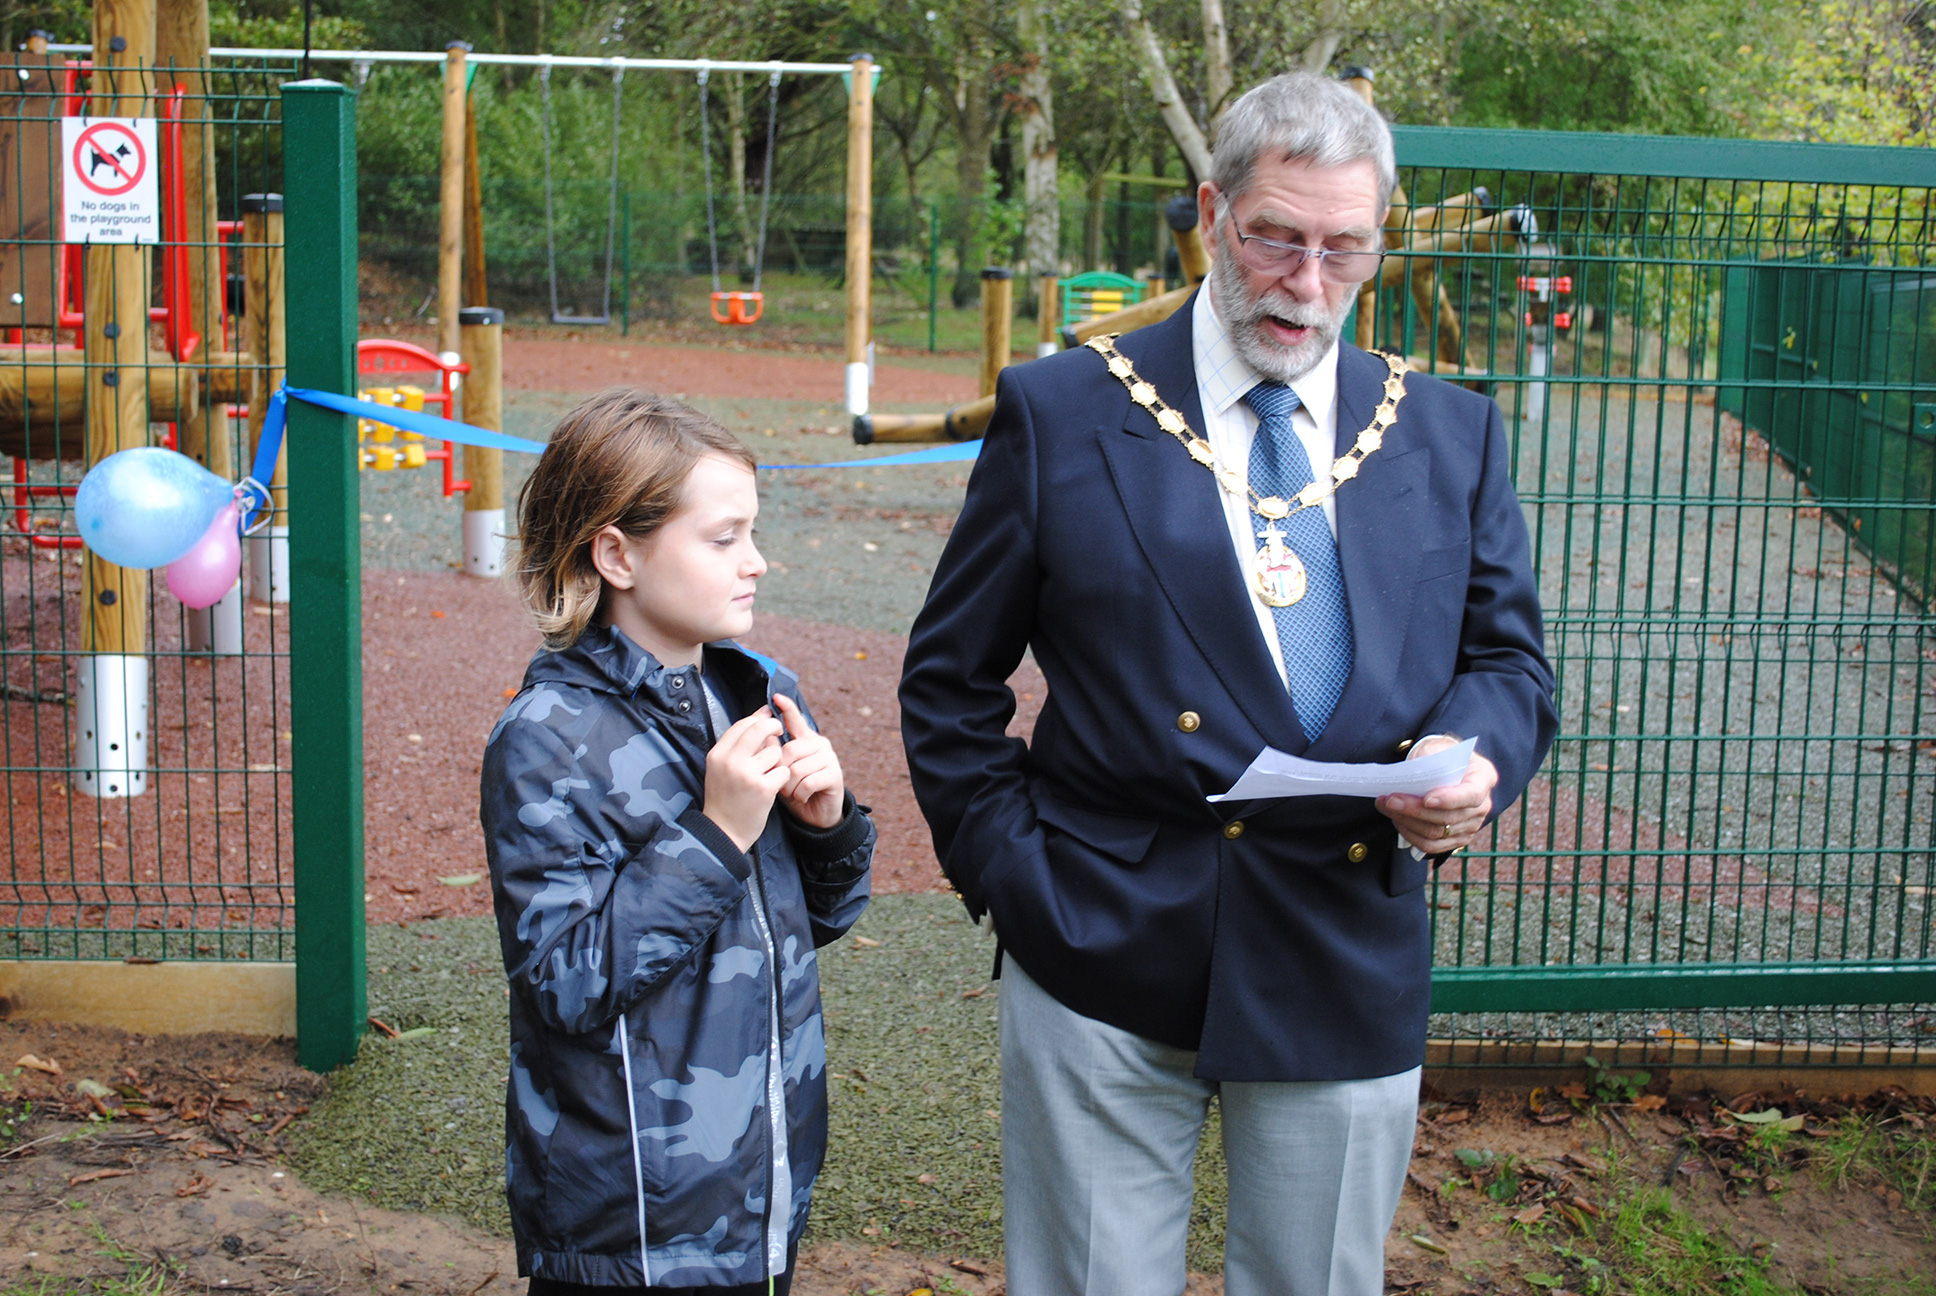 Deputy Mayor opens the playground